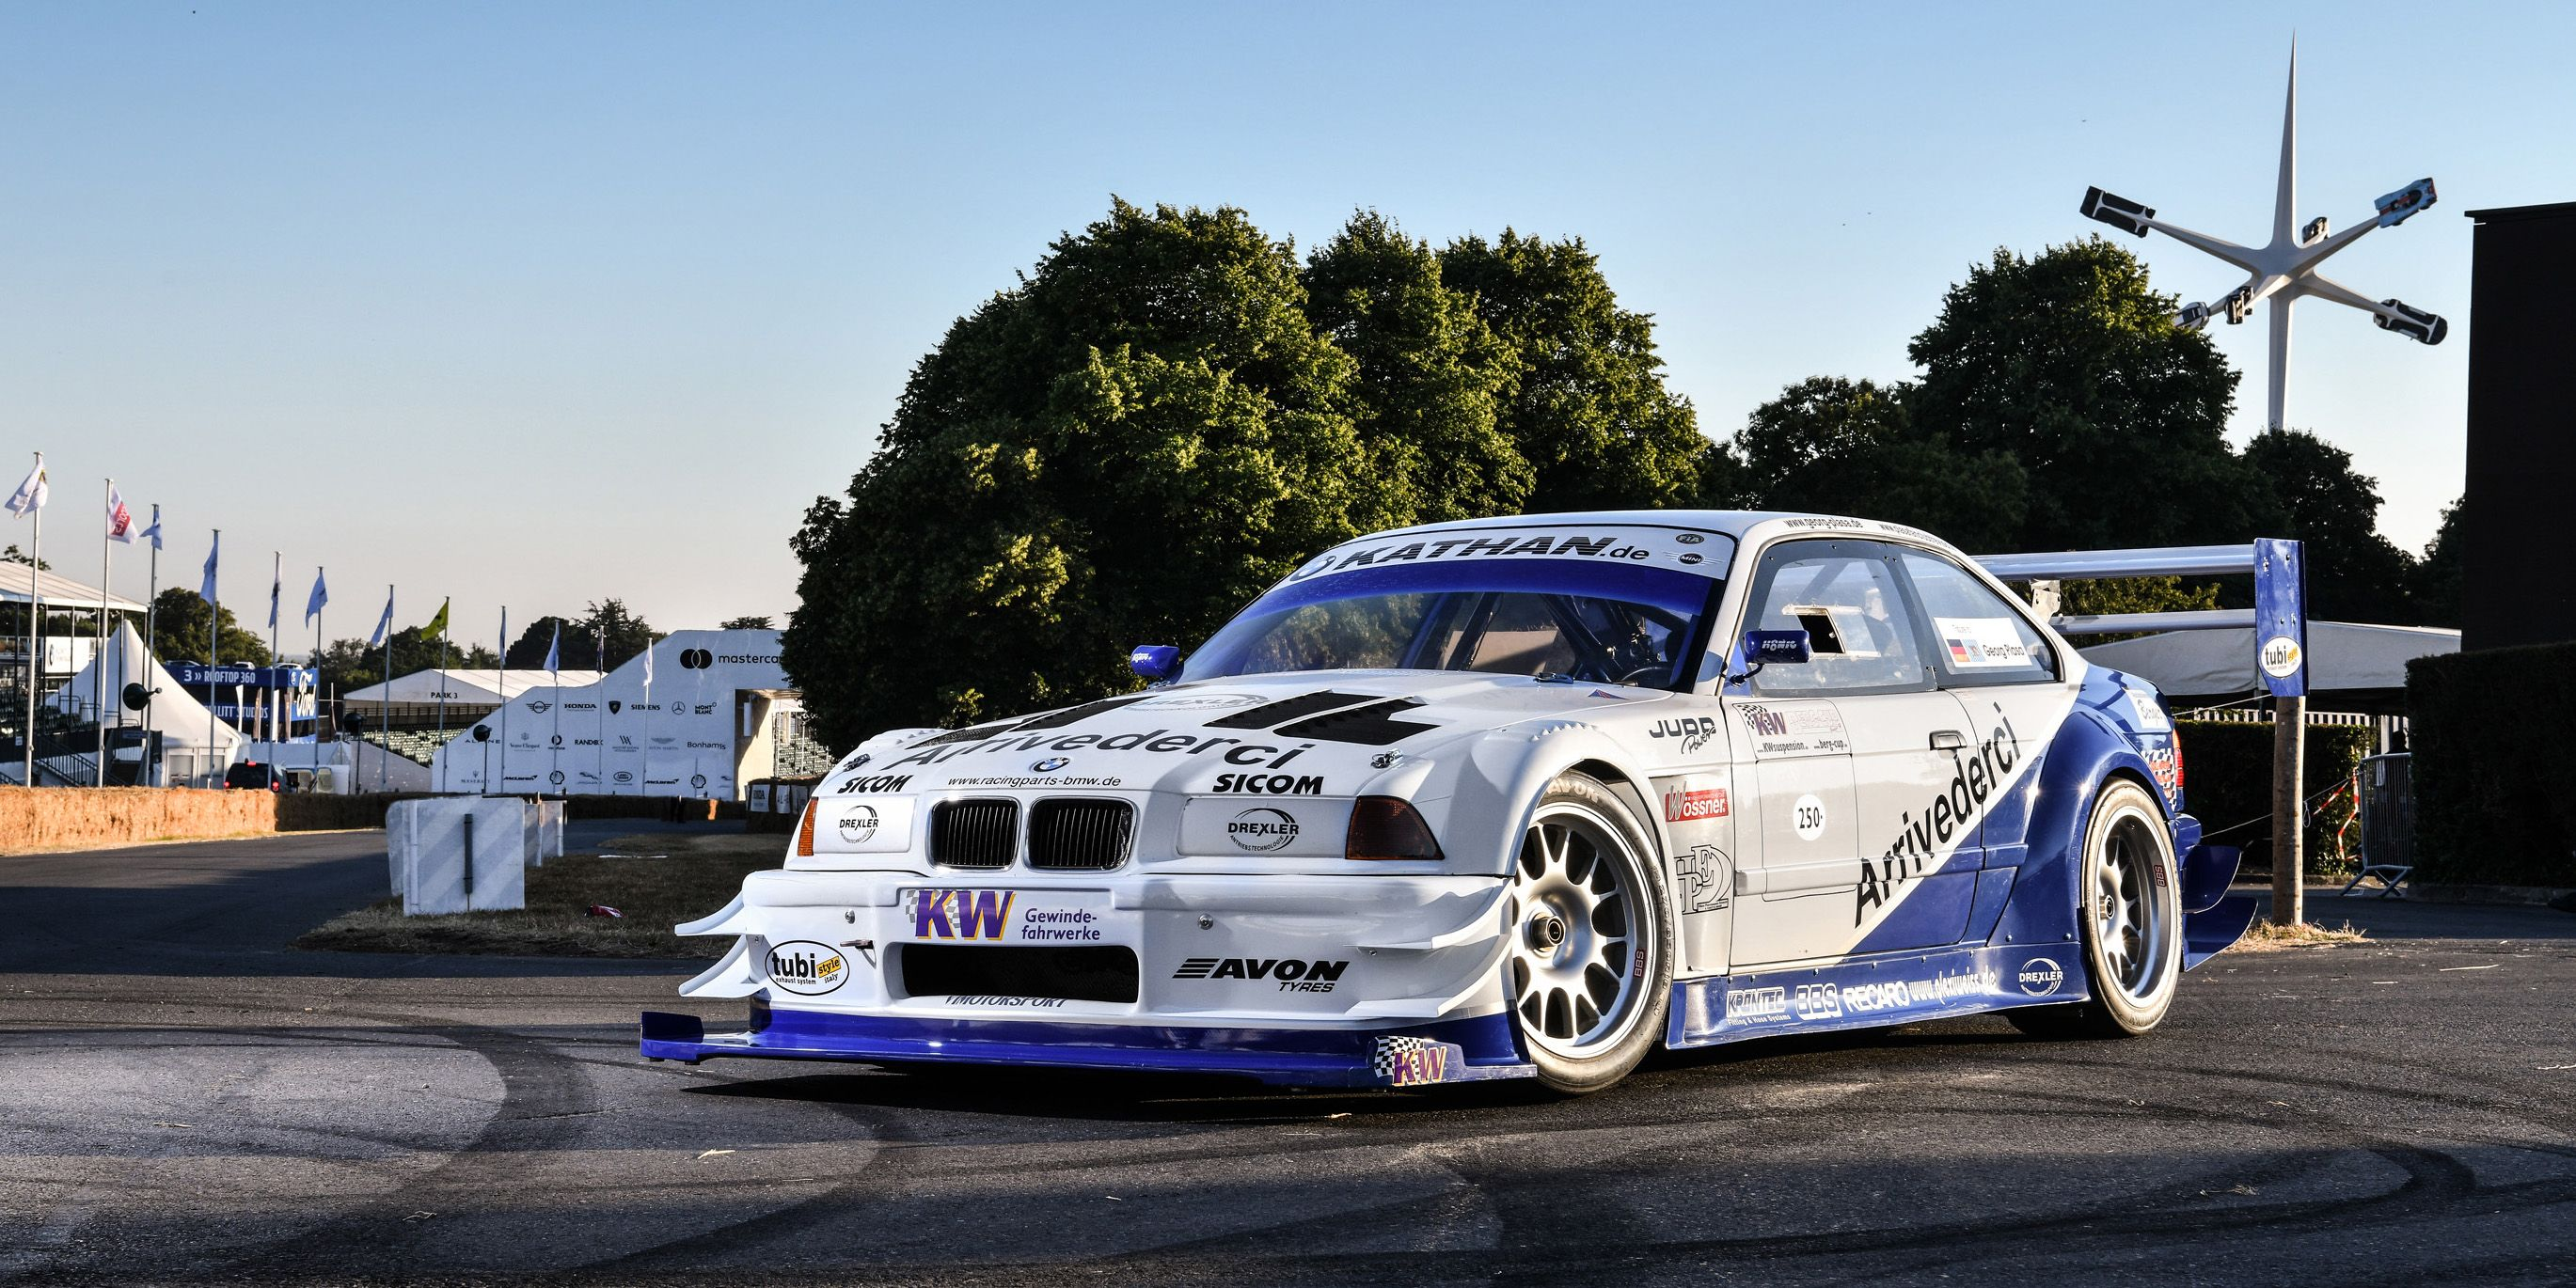 Hillclimb Legend Georg Plasa's Judd V8-Powered BMW E36